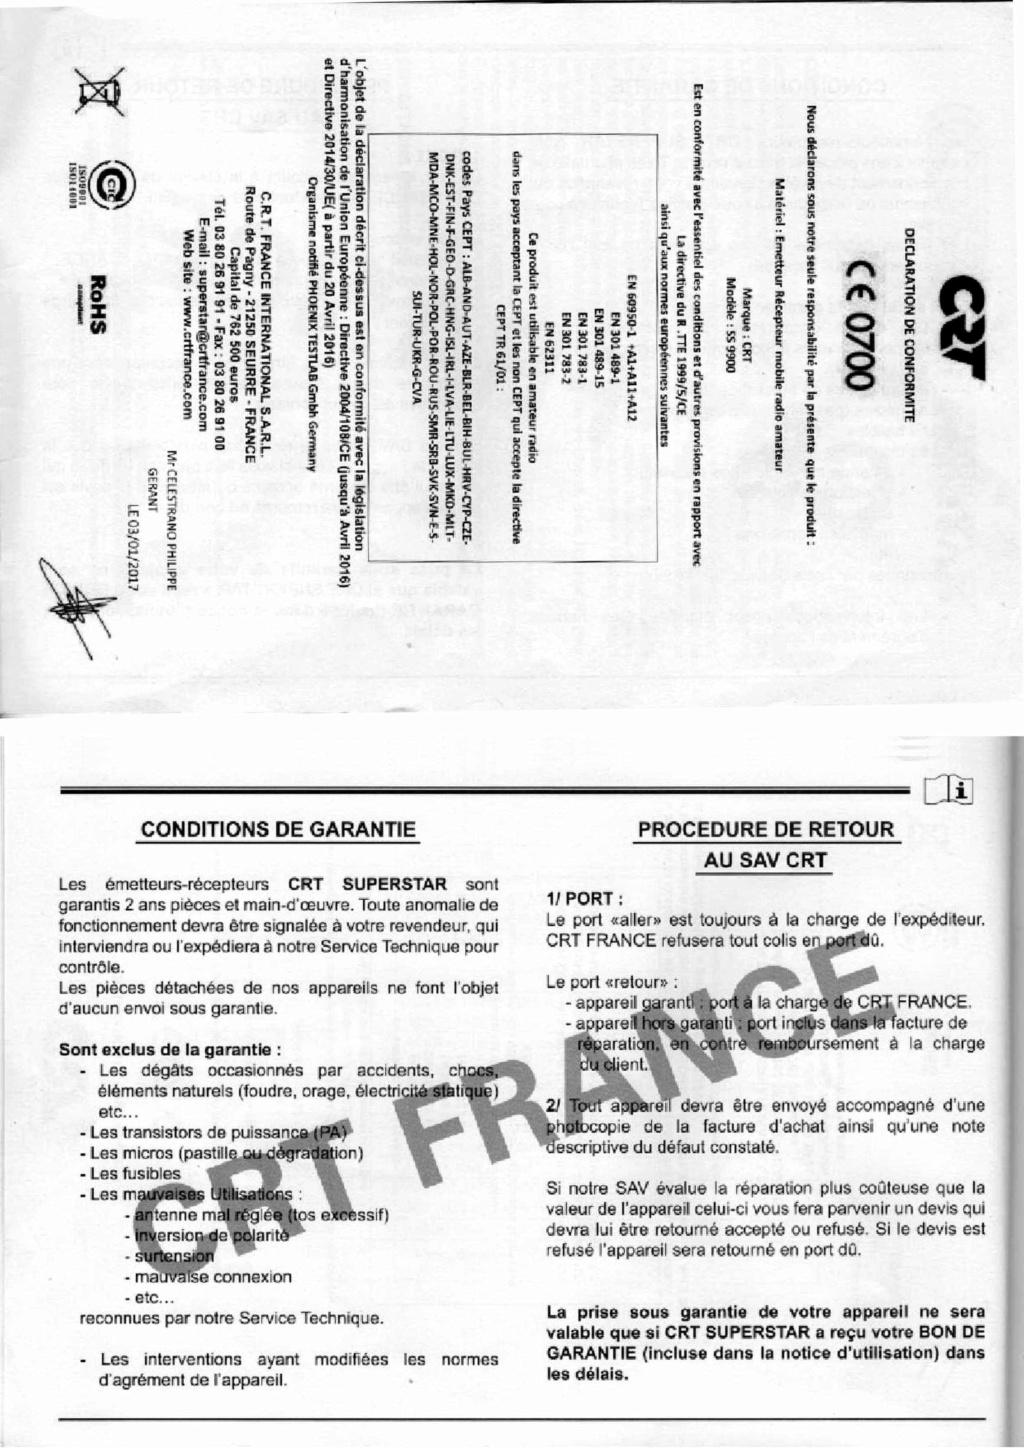 CRT SS 9900 v4 (Mobile) - Page 16 Feuill41